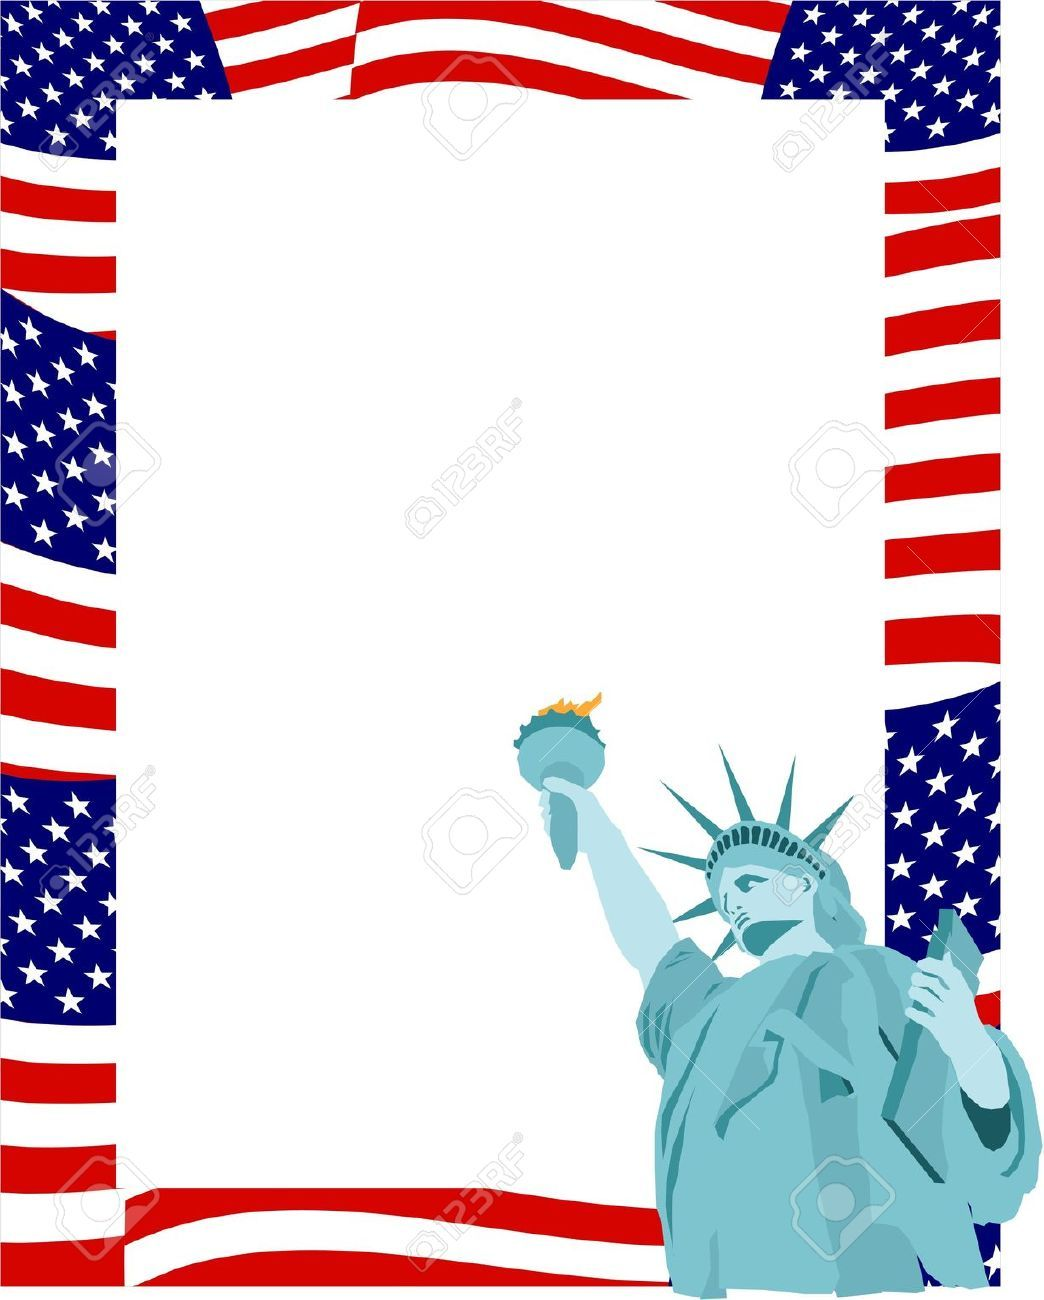 Stock Photo American flag, American flag pictures, Flag